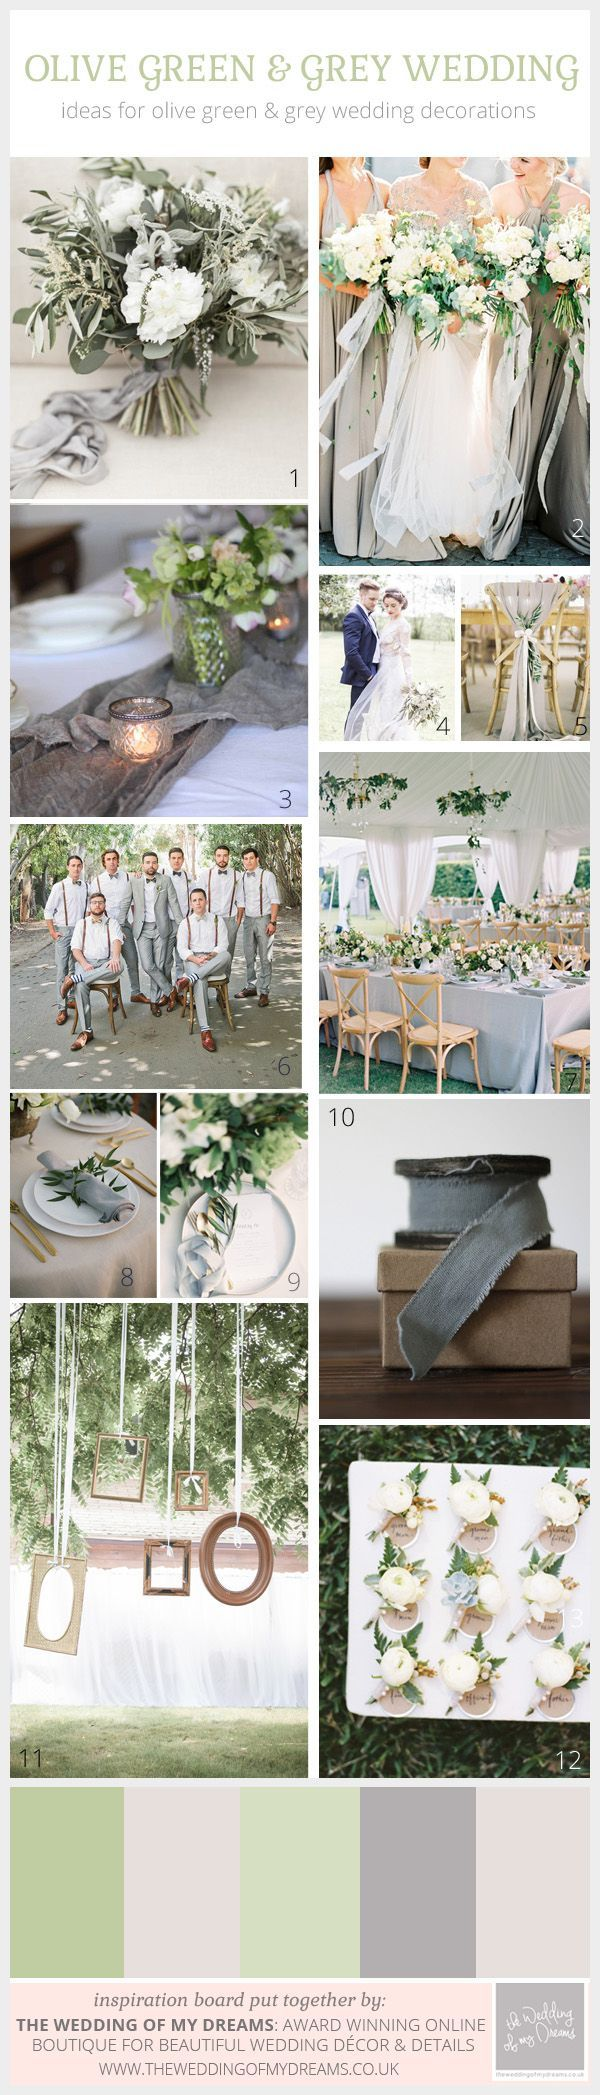 Wedding decorations green  olive green and grey wedding decorations and ideas  Wedding dress